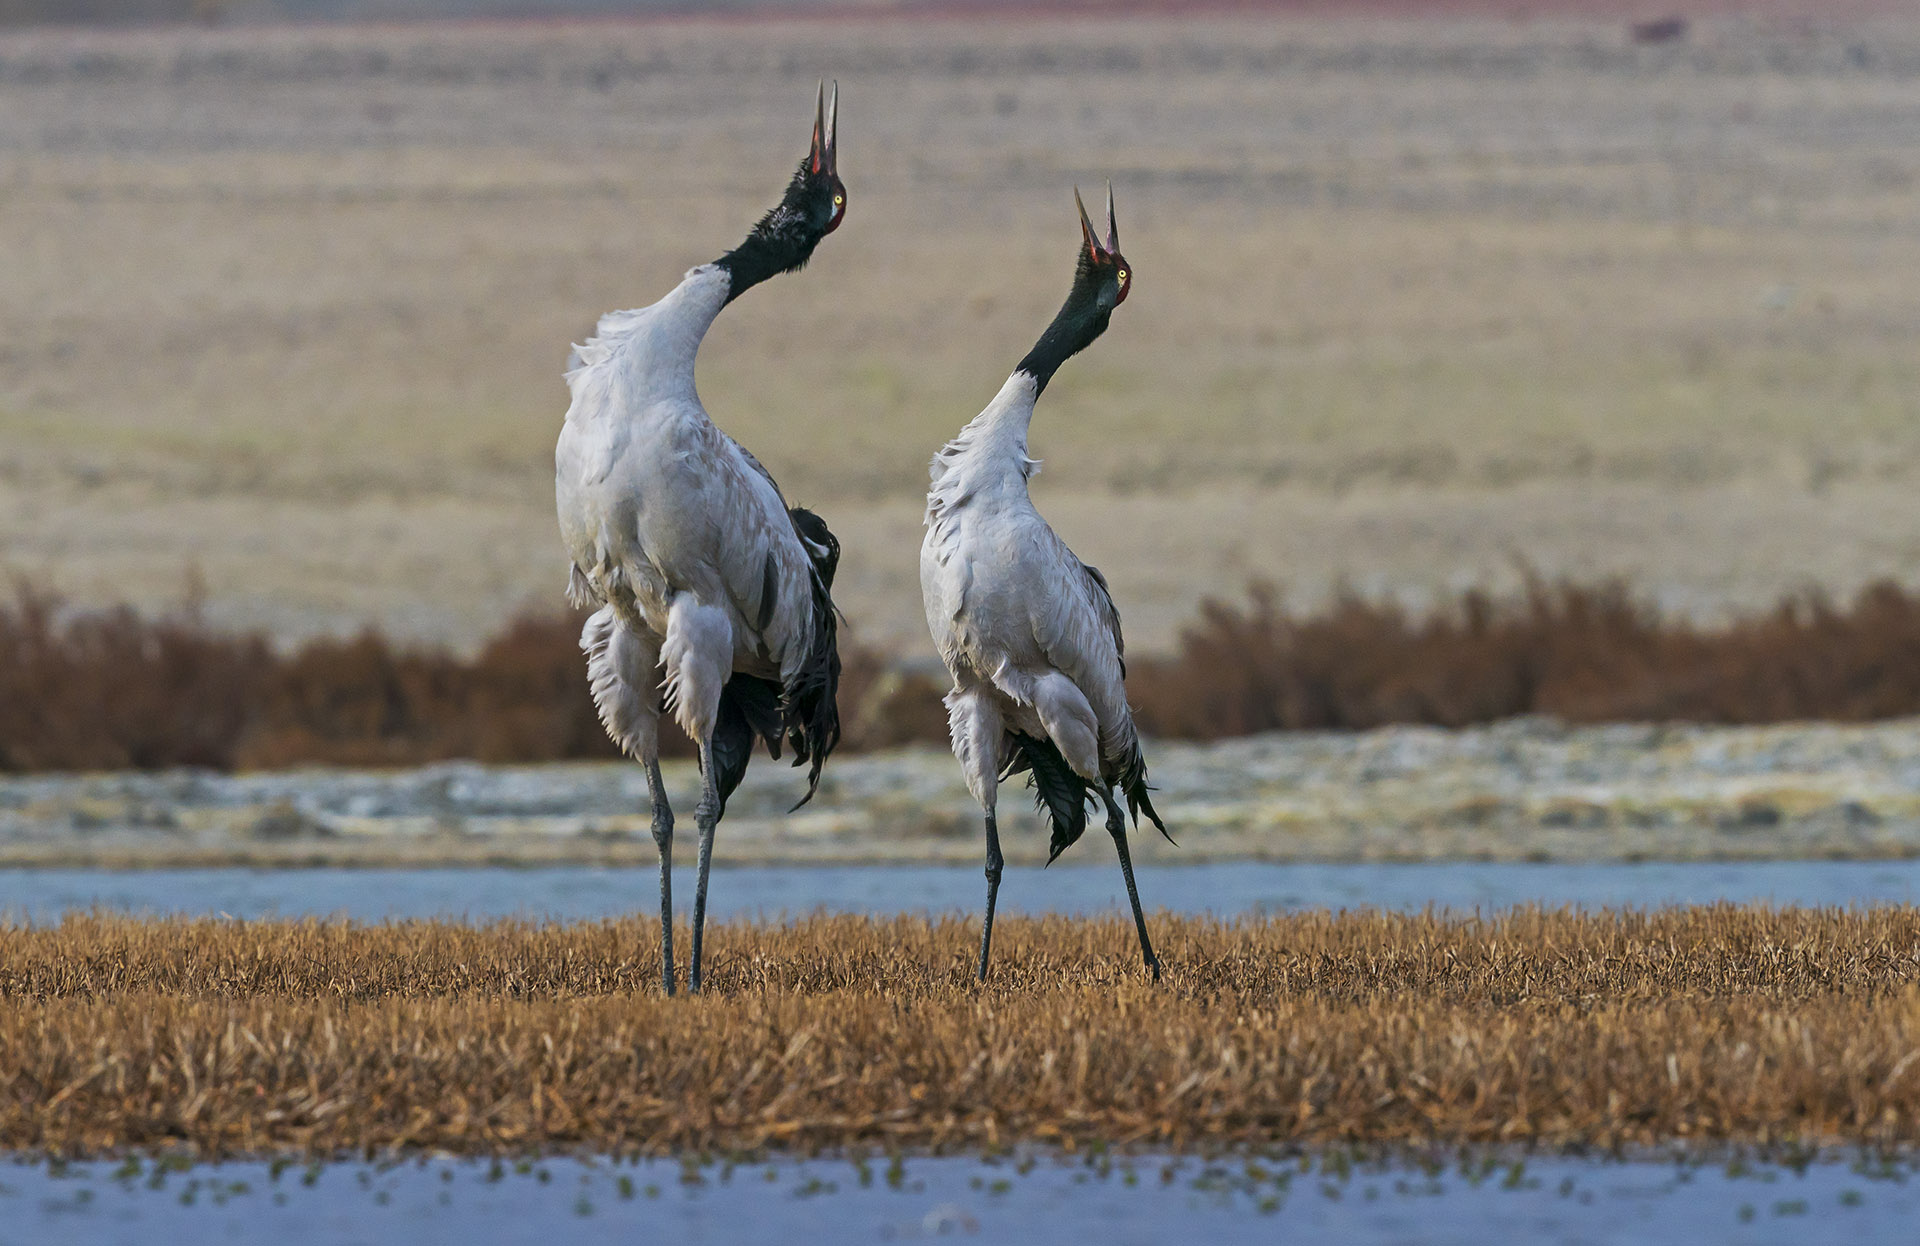 """Displays peak between 5.30 and 8 am, though the cranes do engage in courtship at other times of the day as well. In most cases, partners dance on grassy patches on the ground, or in the snow around wetlands. """"But never in the water,"""" says Dr Pankaj. Courtship and mating continues until late-April and May."""